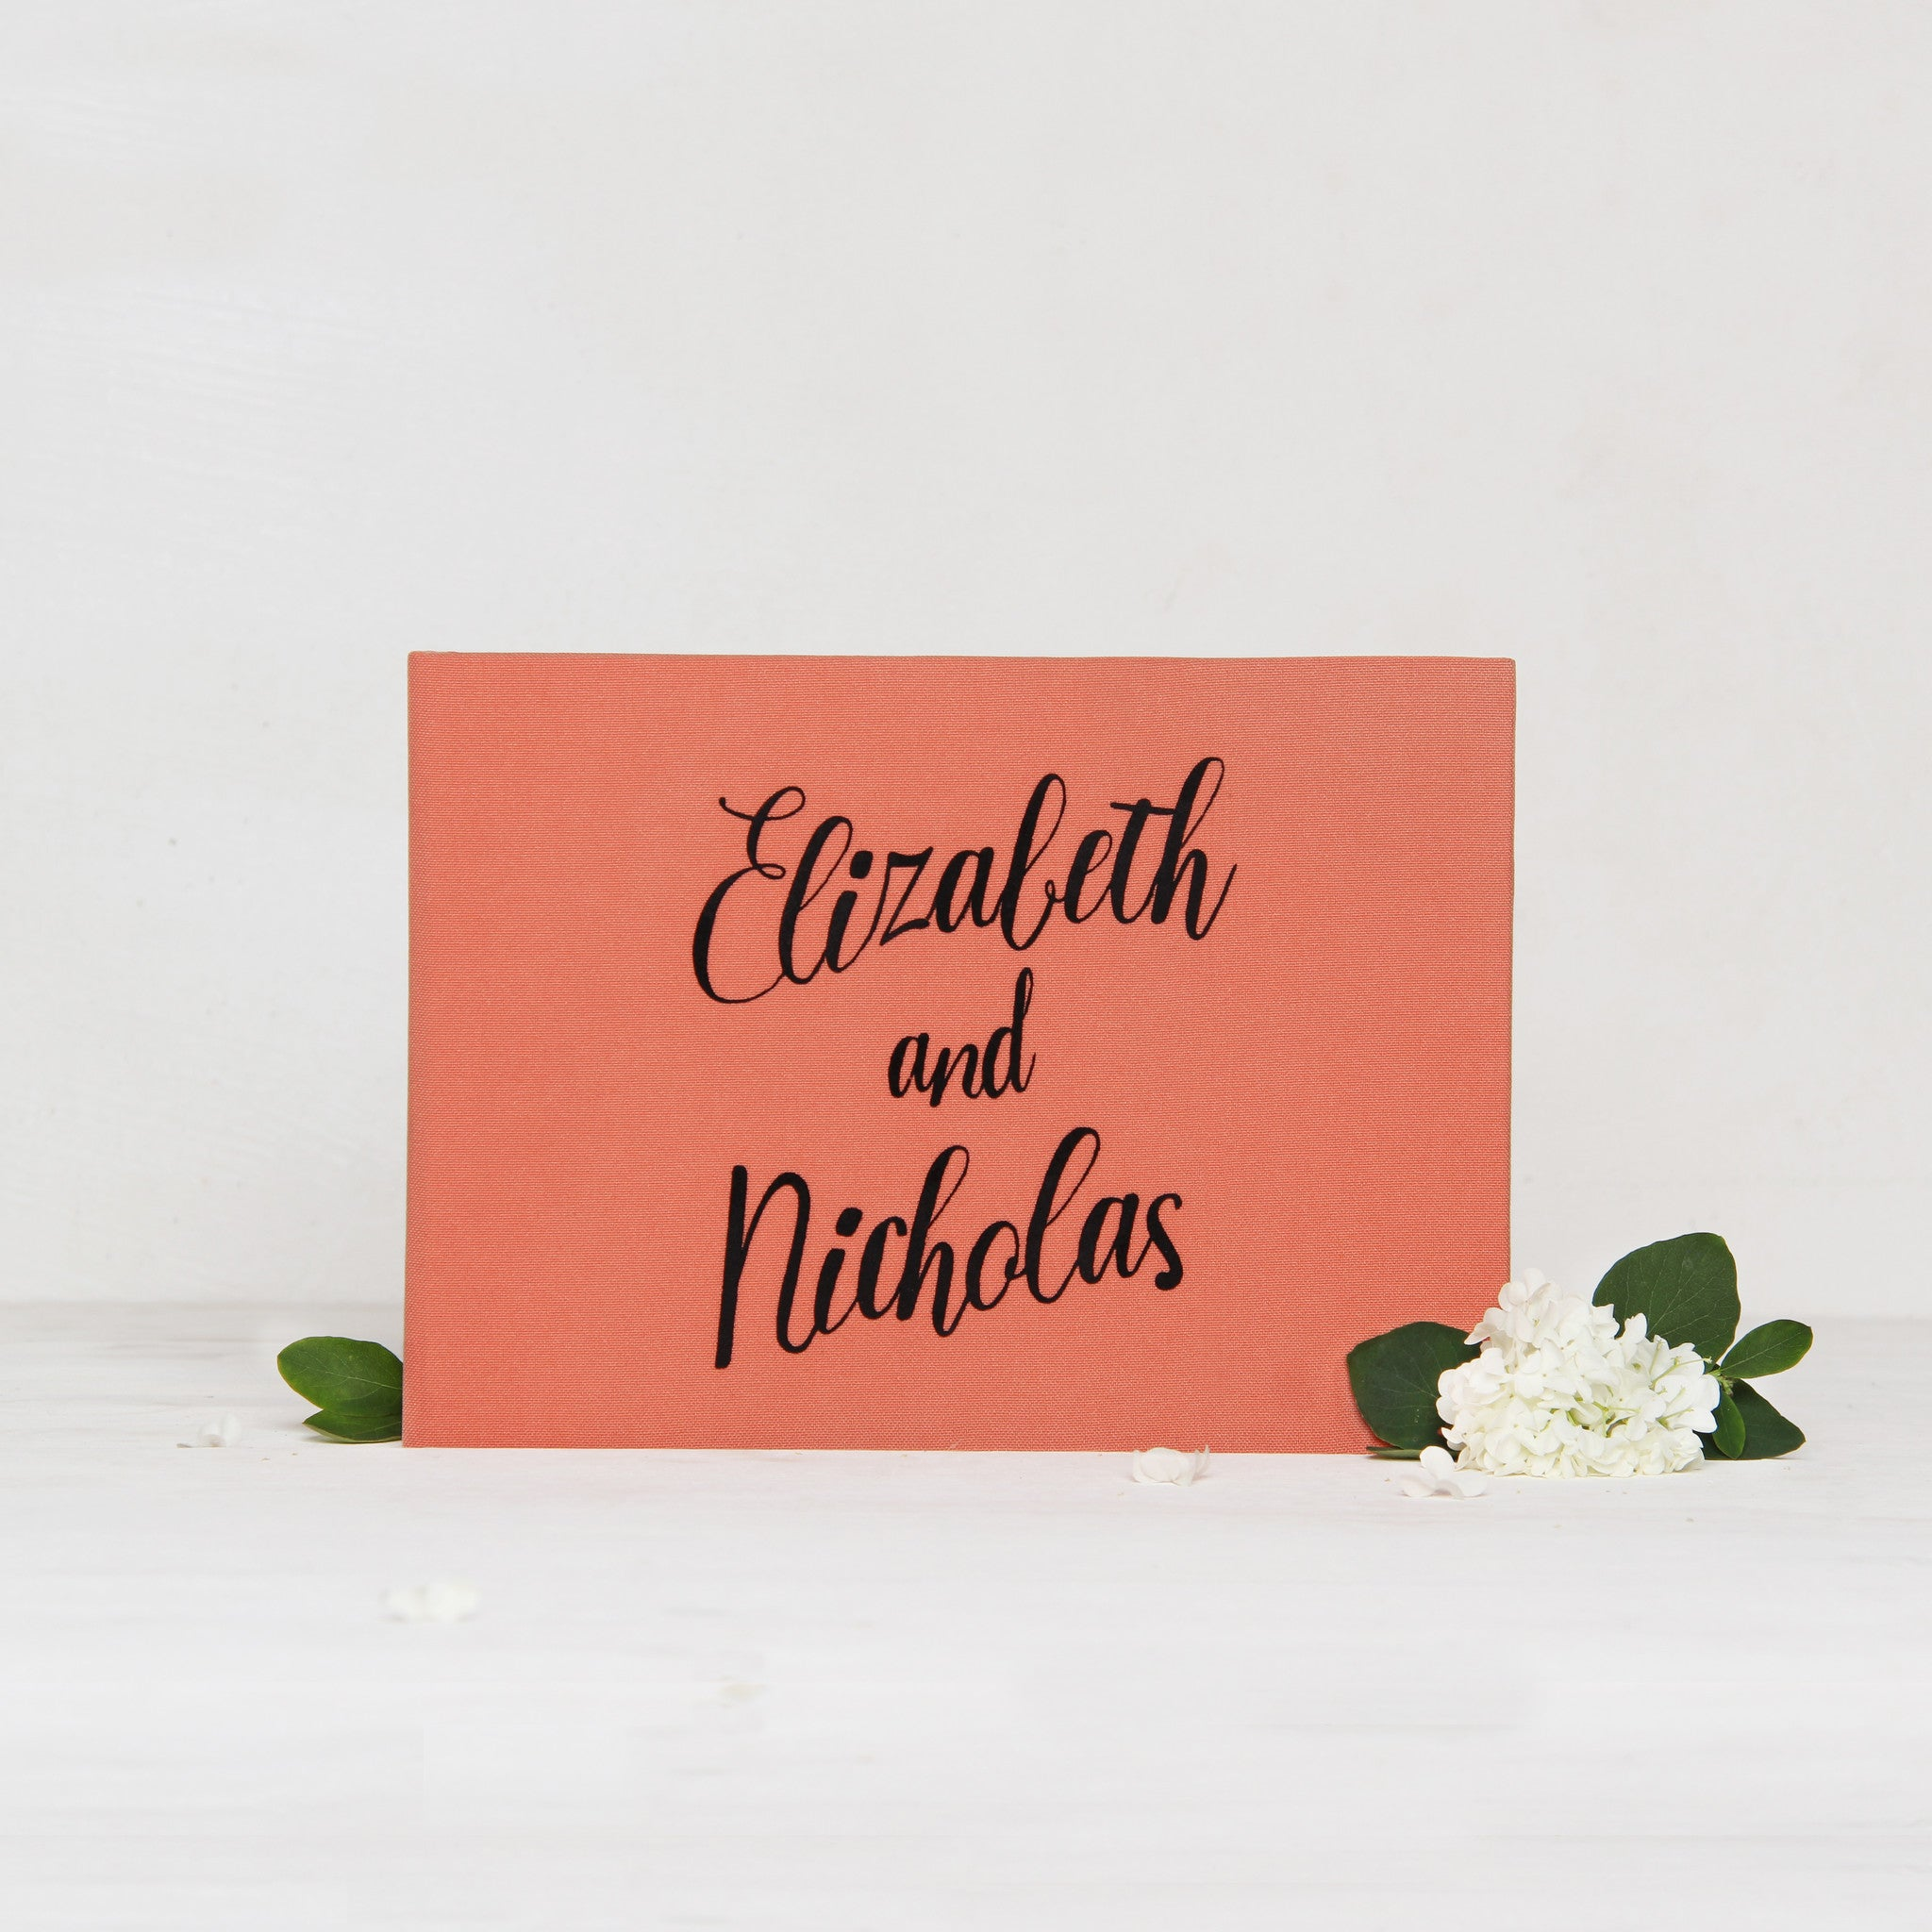 Guest Book Sign in Book Instant Album Coral with Black Lettering by Liumy - Liumy